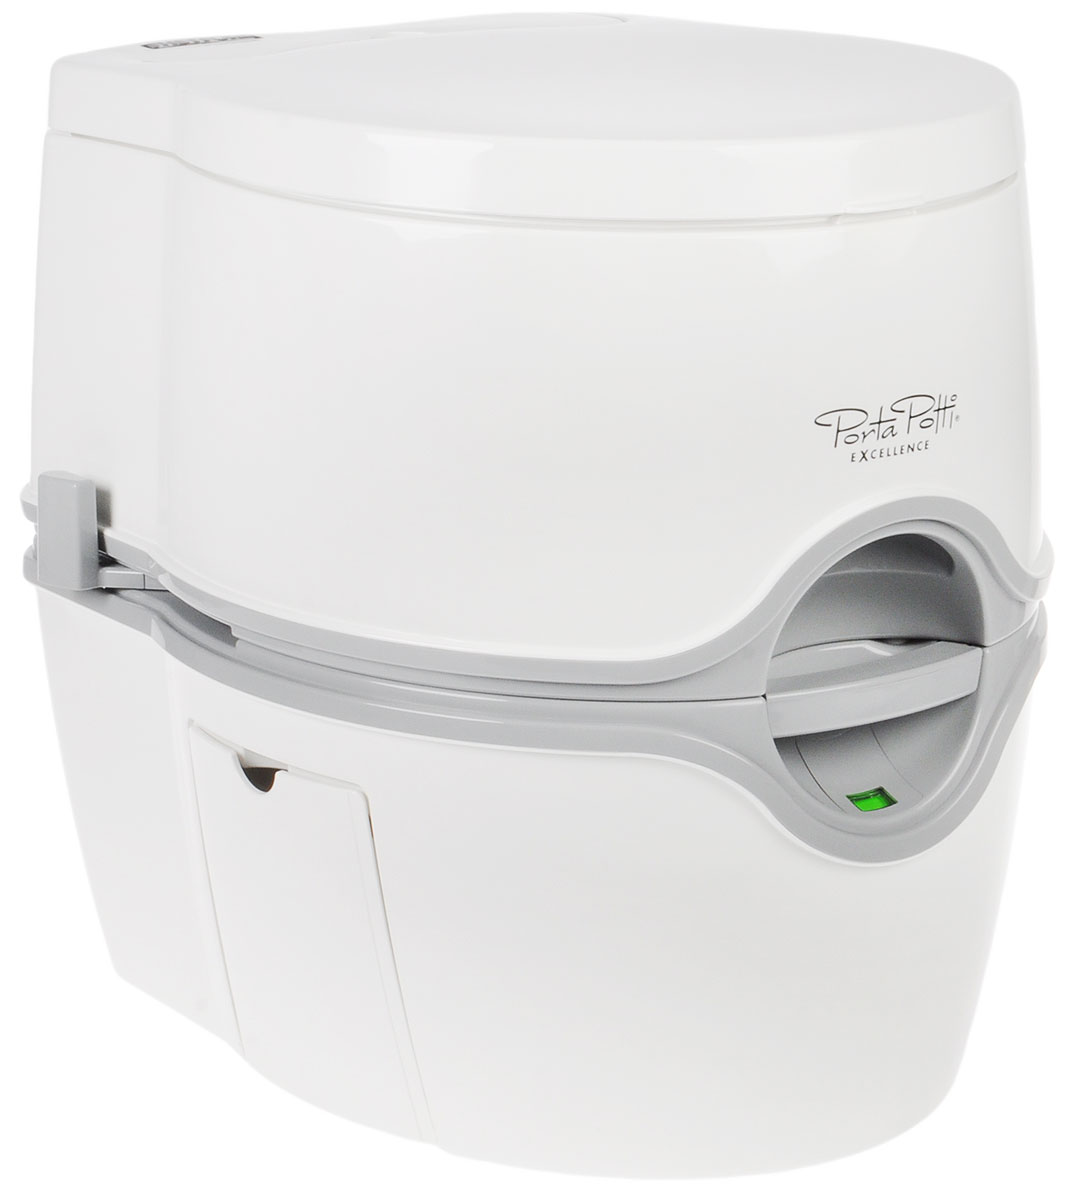 Биотуалет Thetford Porta Potti Excellence Electric, цвет: белый биотуалет thetford campa potti excellence 92301 92331